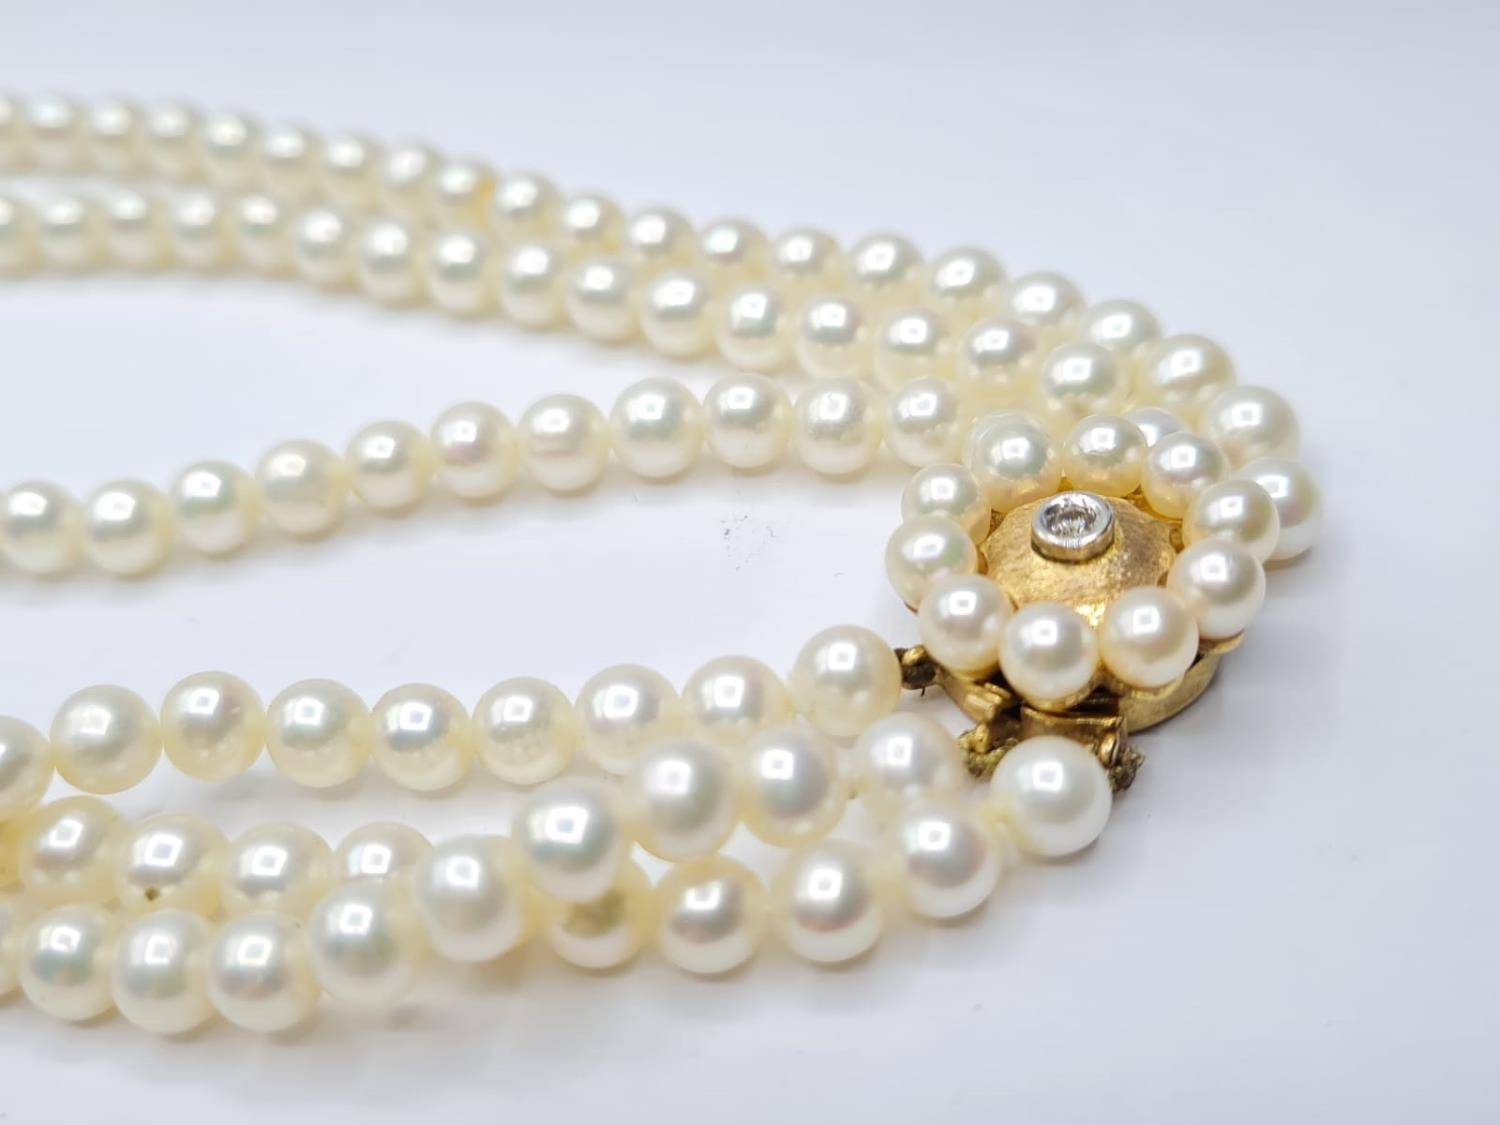 3 rows of cultured pearls choker necklace set in 9ct gold clasp, weight 45g and 33cm long approx - Image 3 of 4